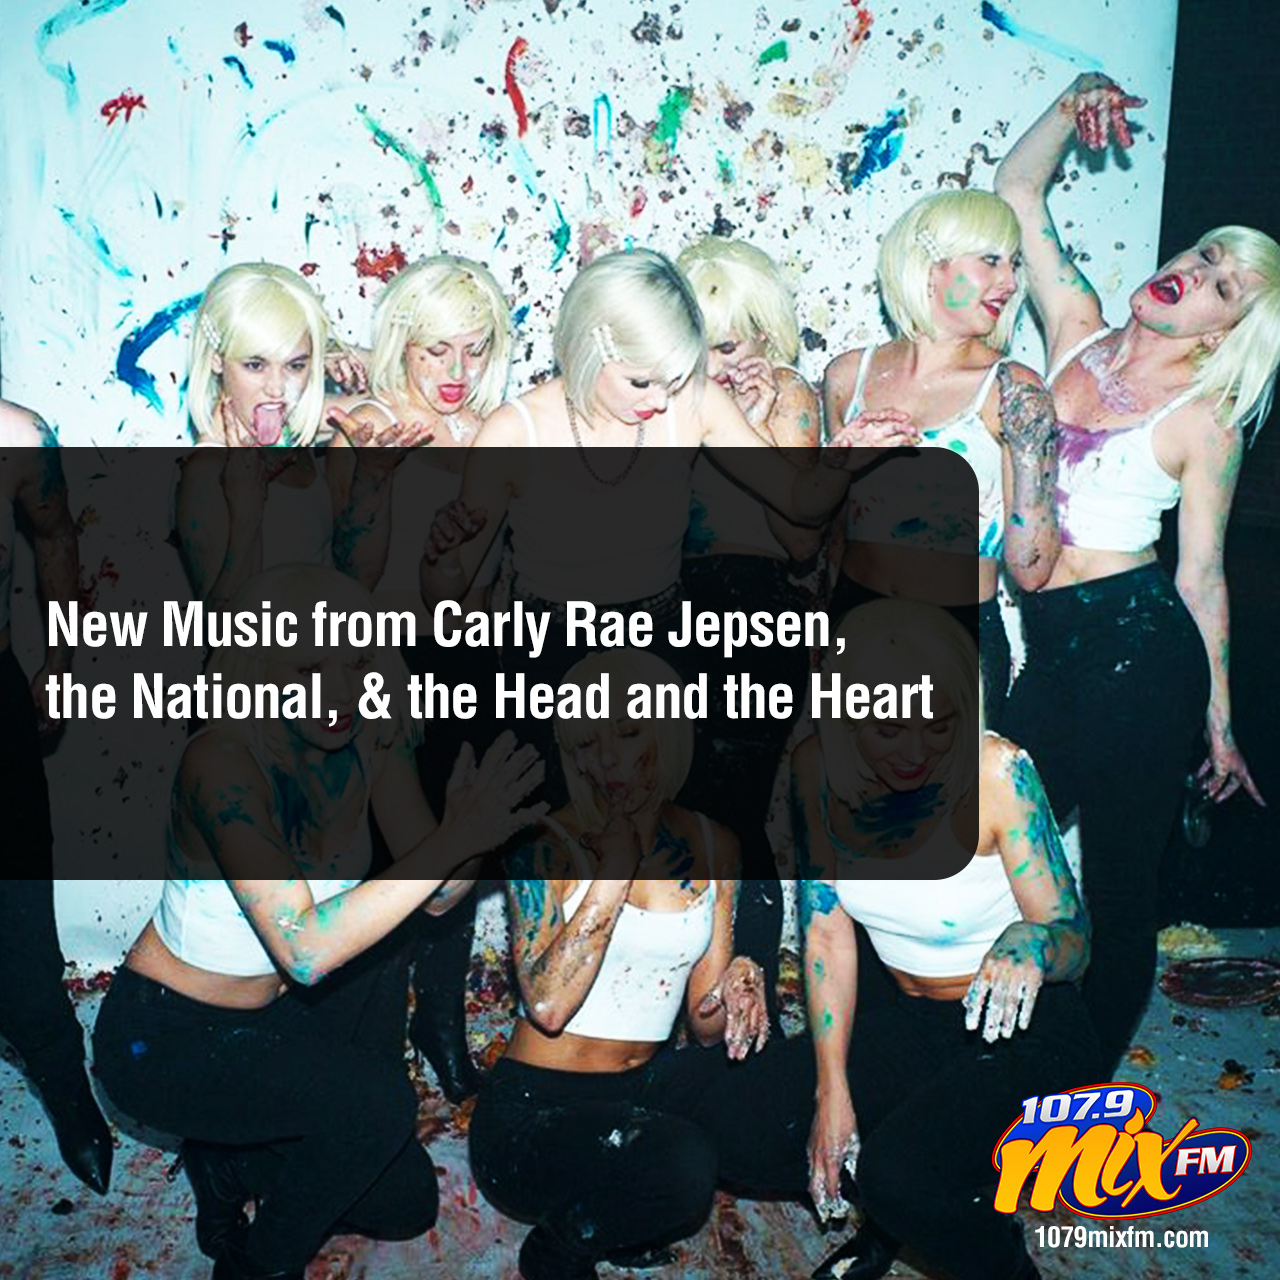 New Music from Carly Rae Jepsen, the National, and the Head and the Heart